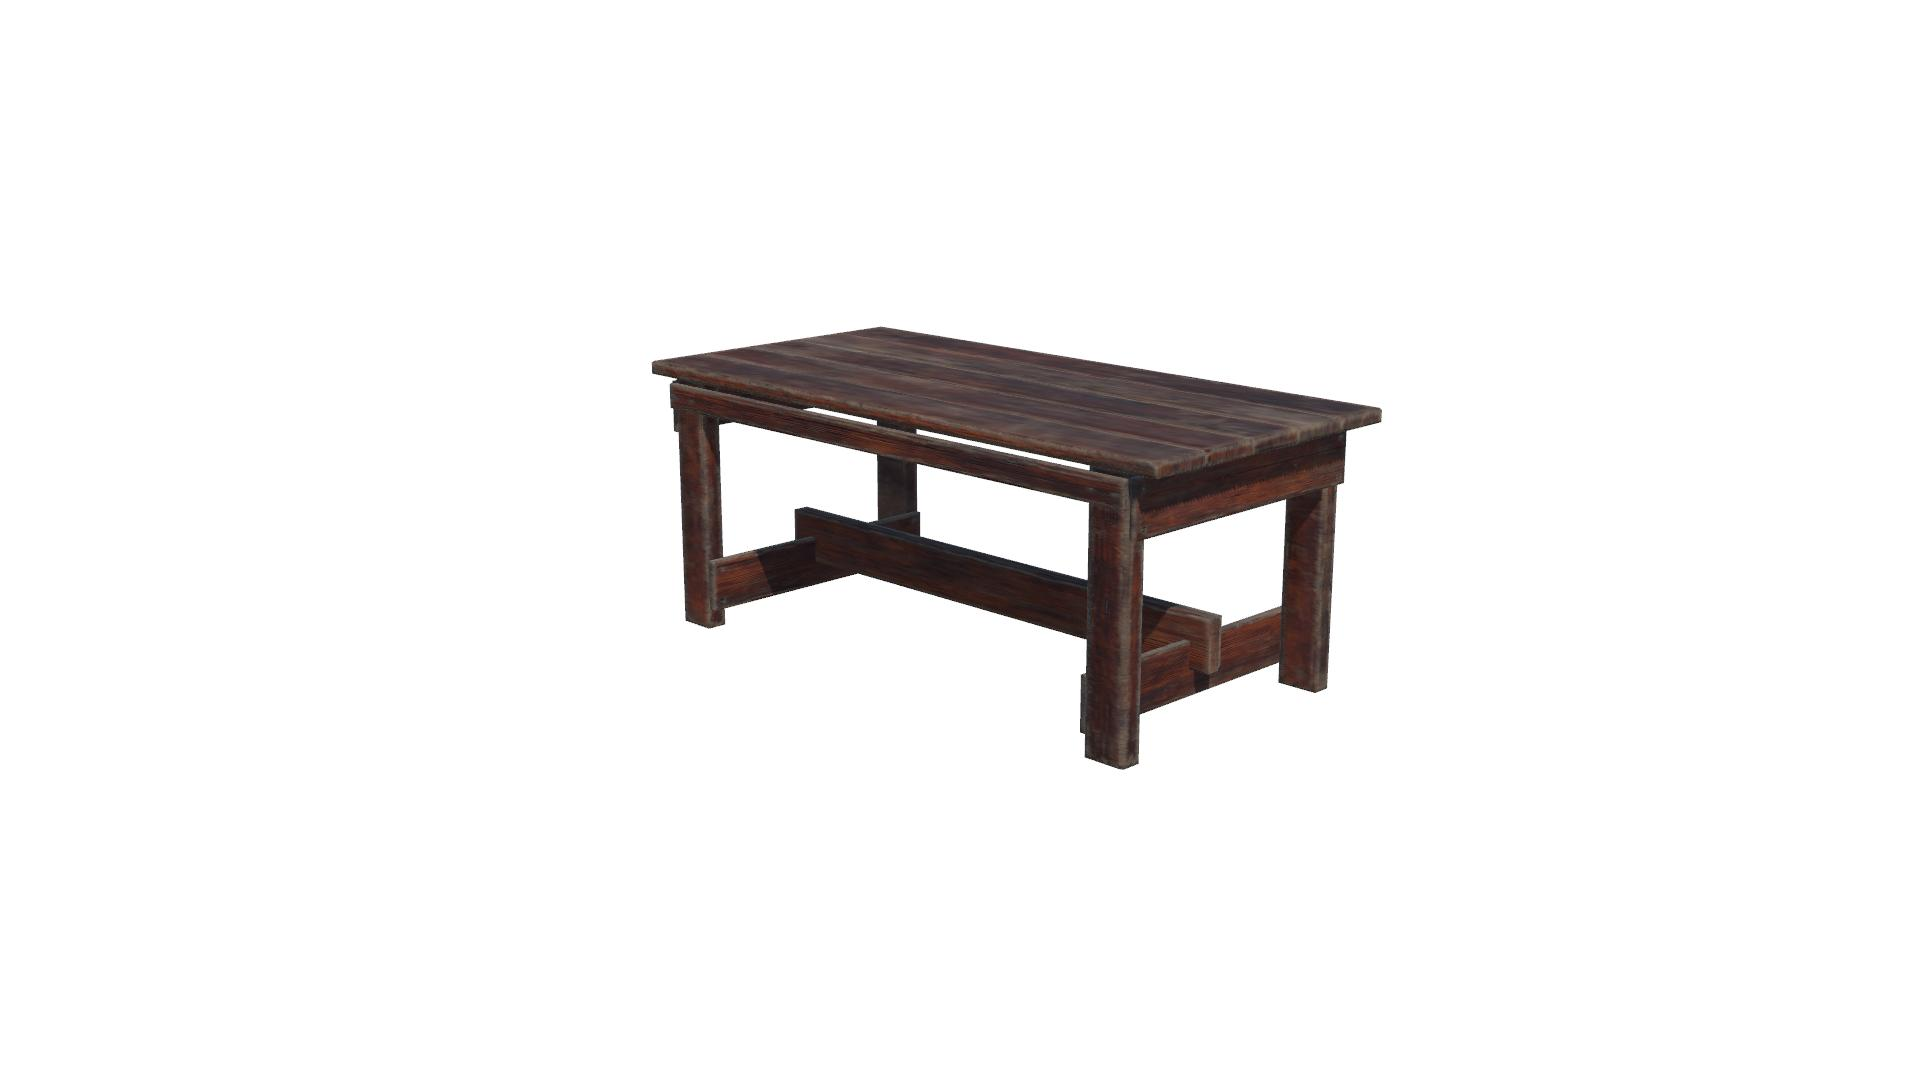 Wooden old table